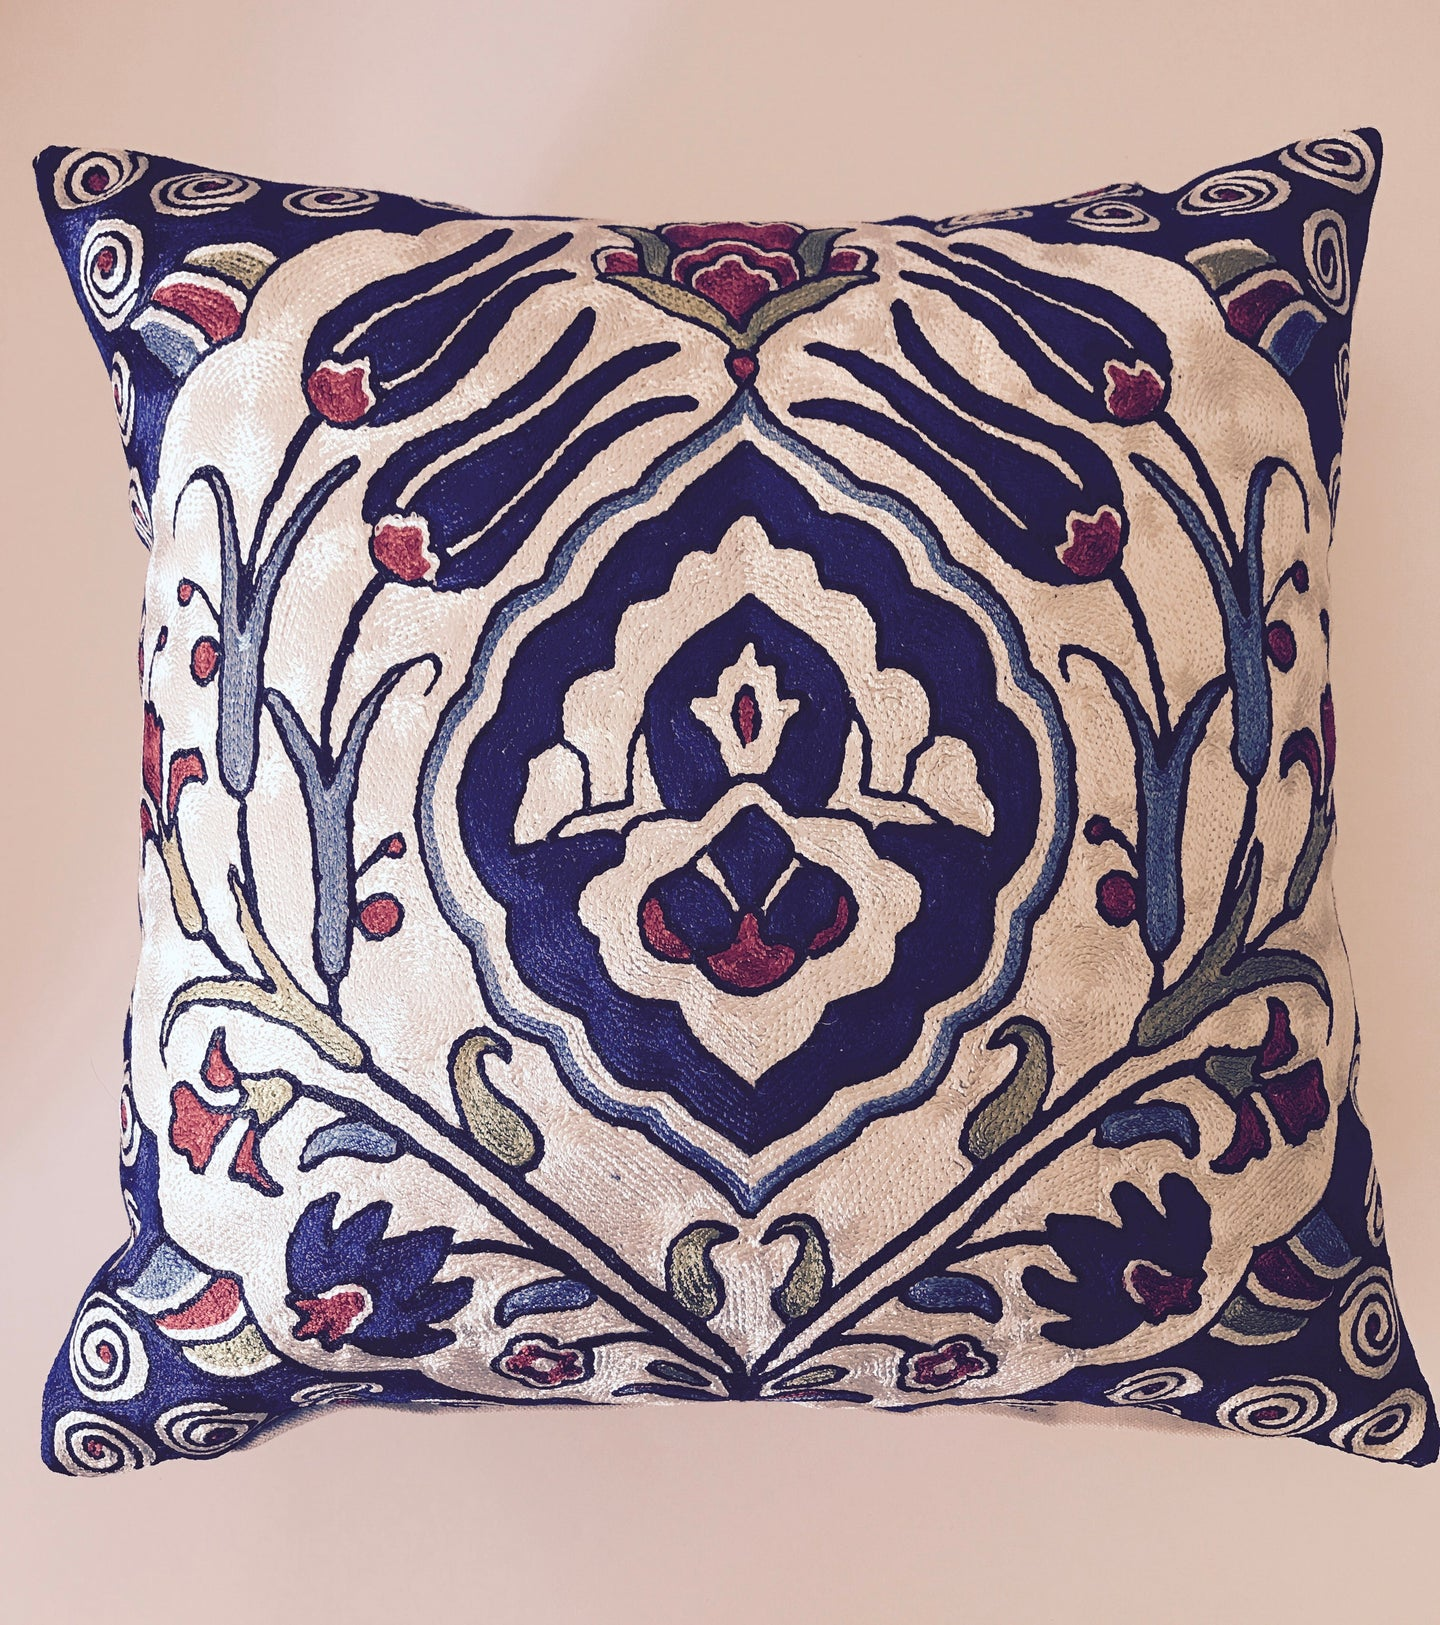 Silk Hand Embroidered Suzani Pillow Shams 18